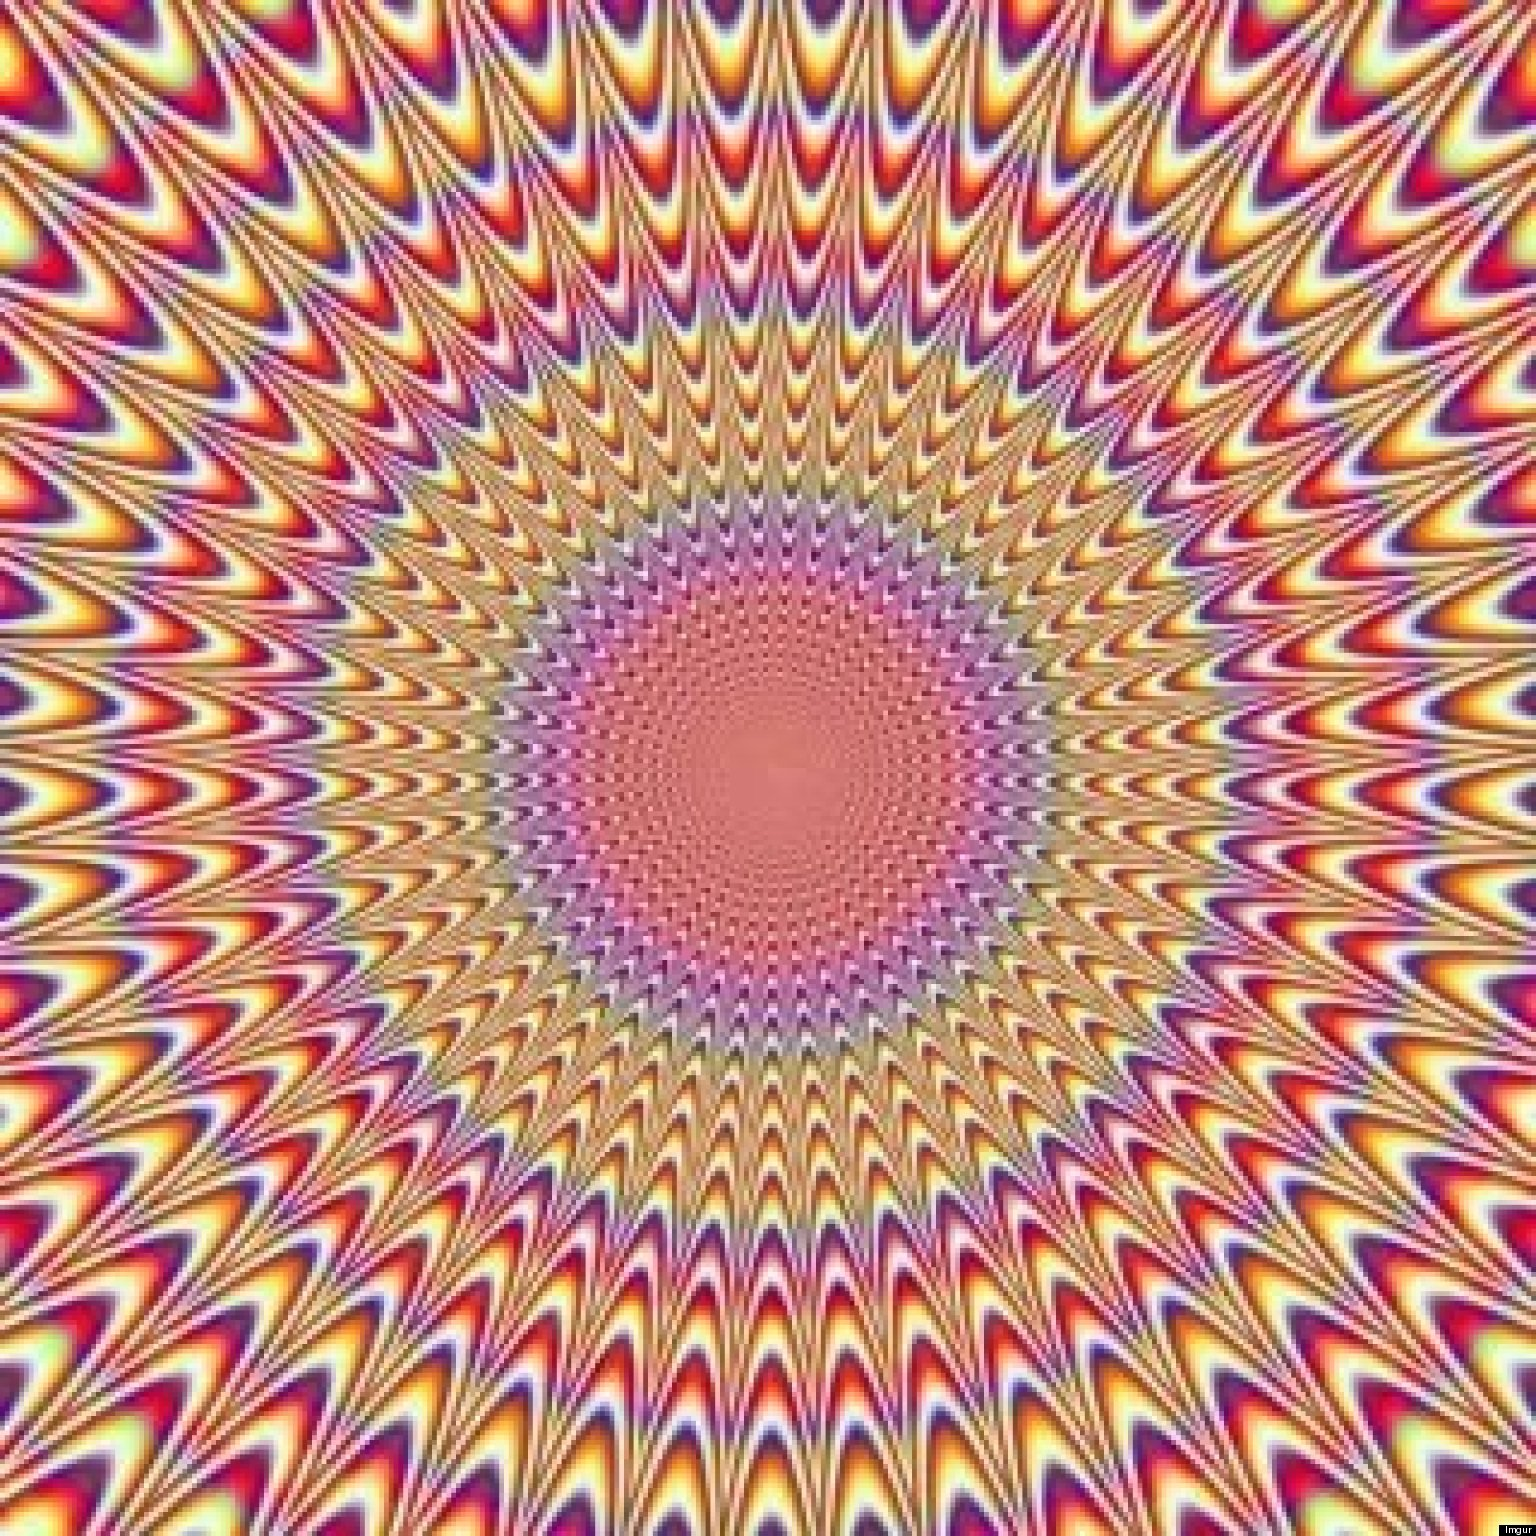 10 Optical Illusions That Will Make You Do A Double Take